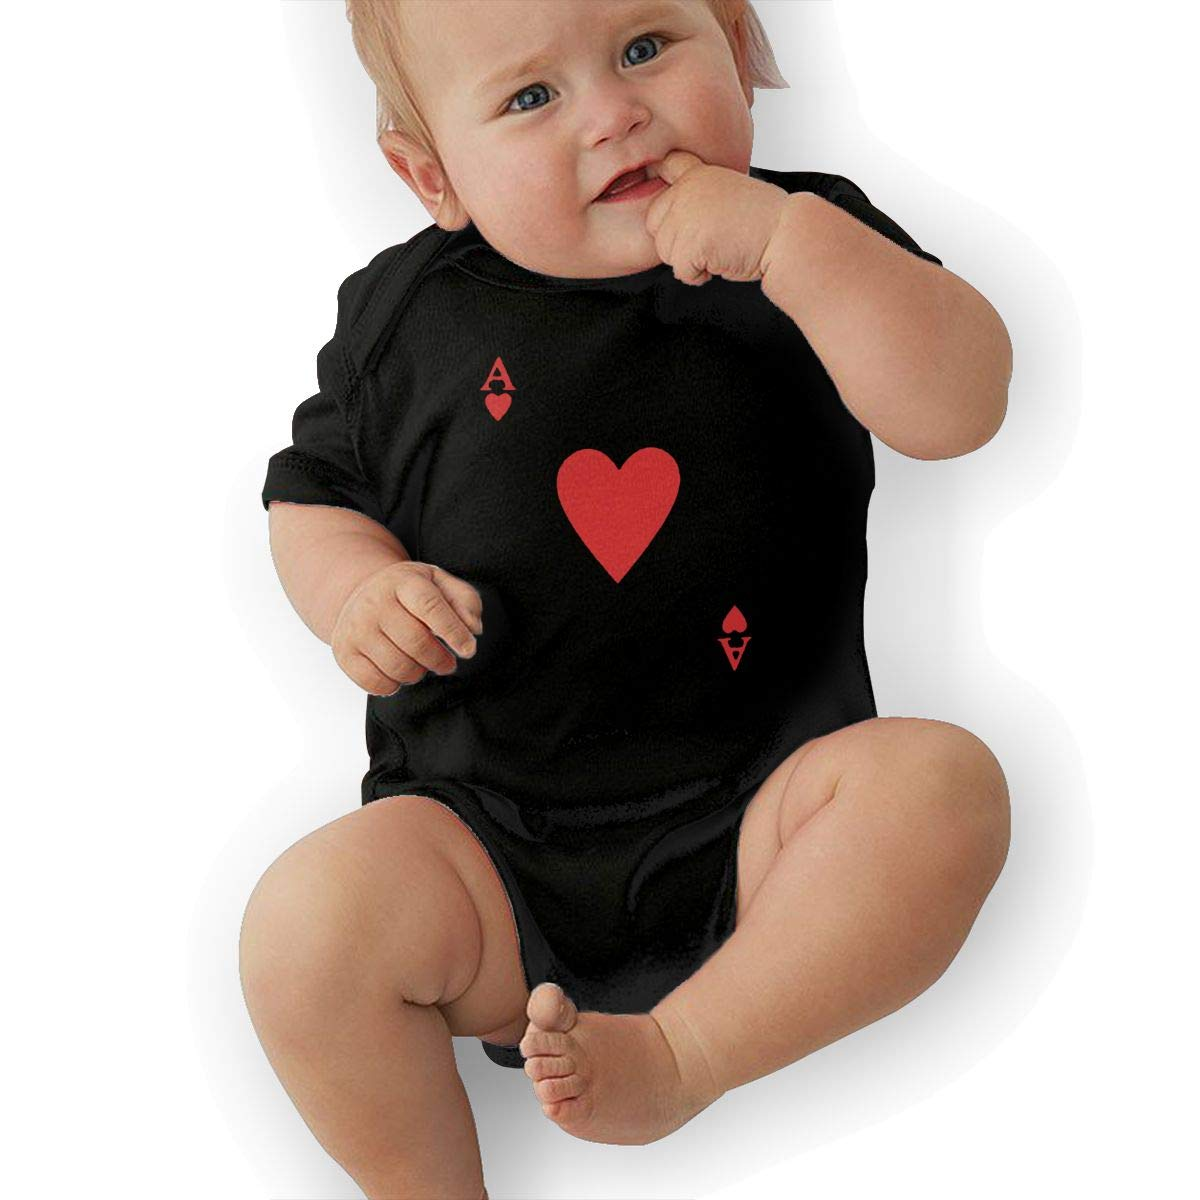 RED Heart of A Ace of Spades Poker Baby Pajamas Bodysuits Clothes Onesies Jumpsuits Outfits White